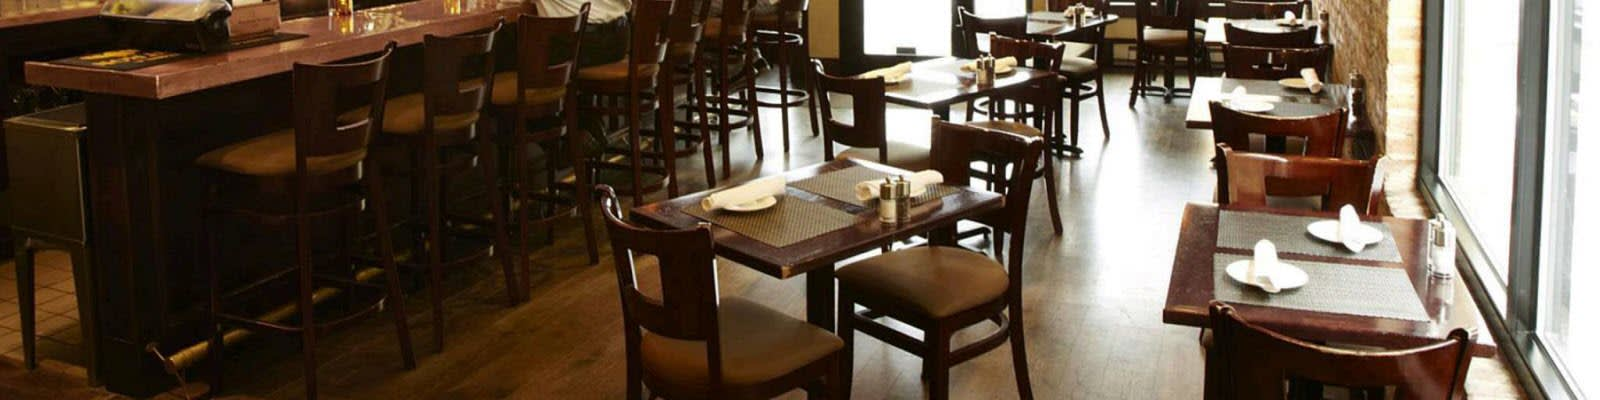 Wood restaurant furniture